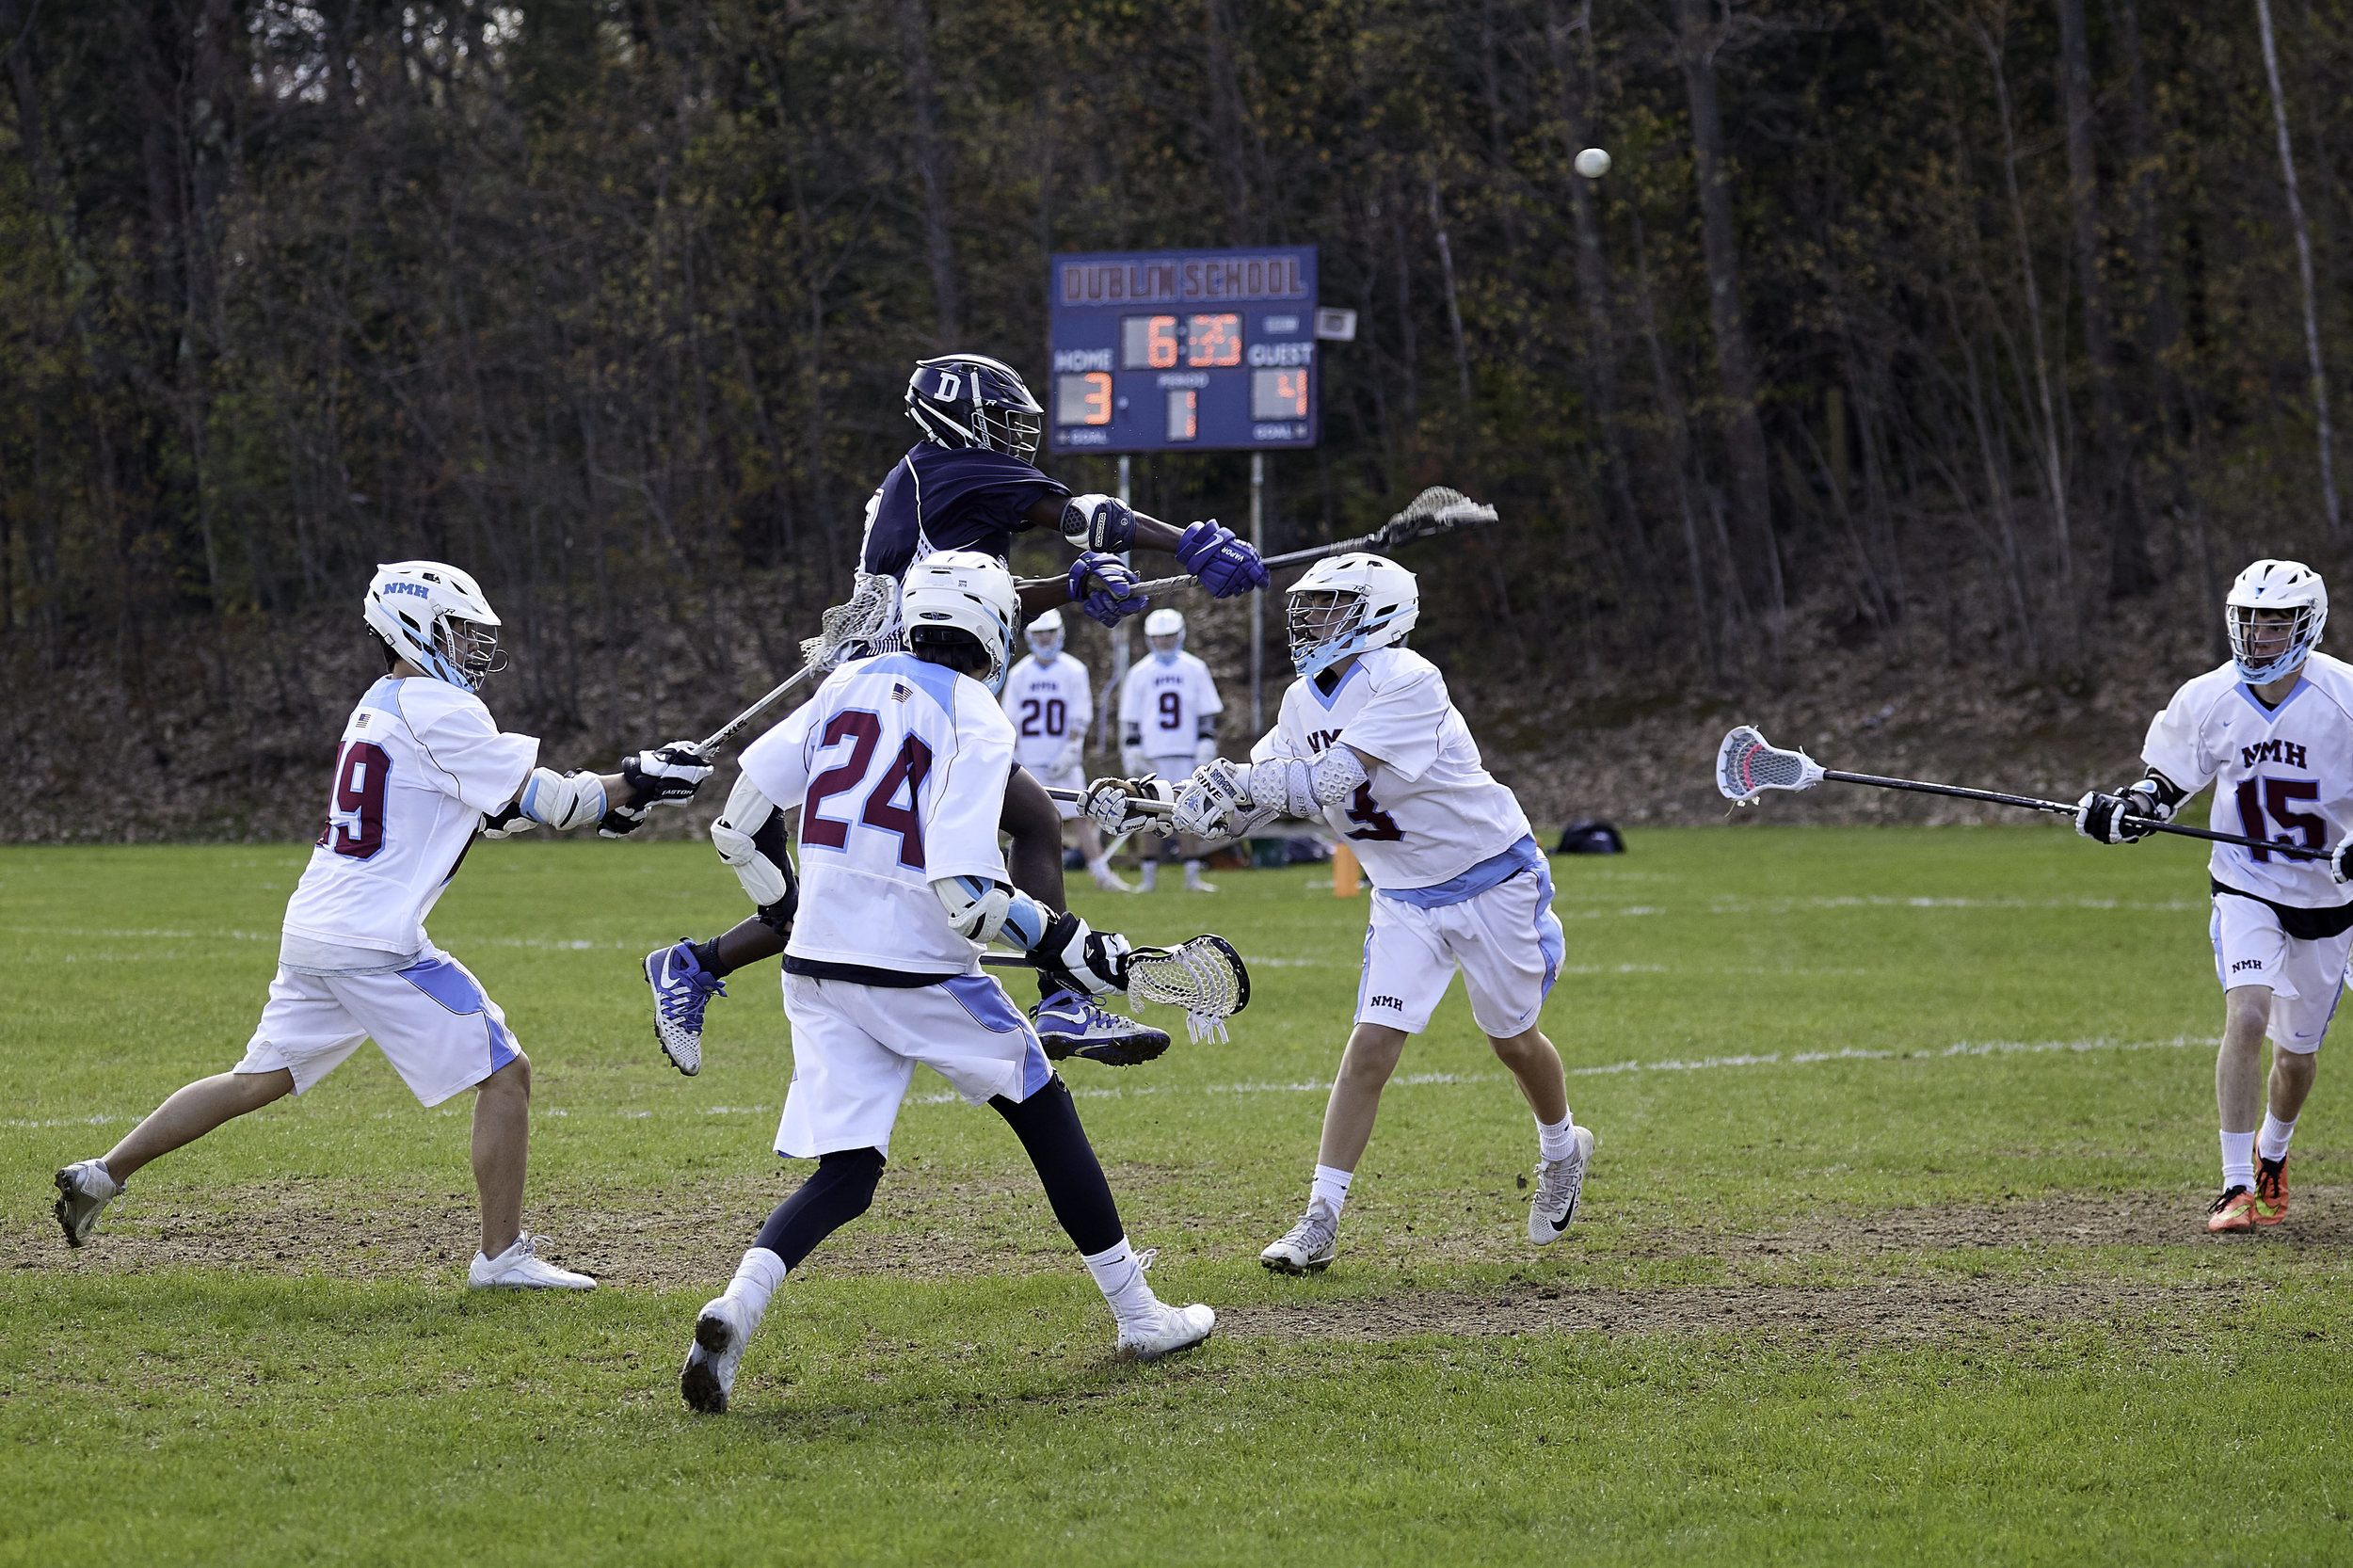 Boys Lax vs Northfield Mount Hermon JV - May 15 2019 - 0005.jpg